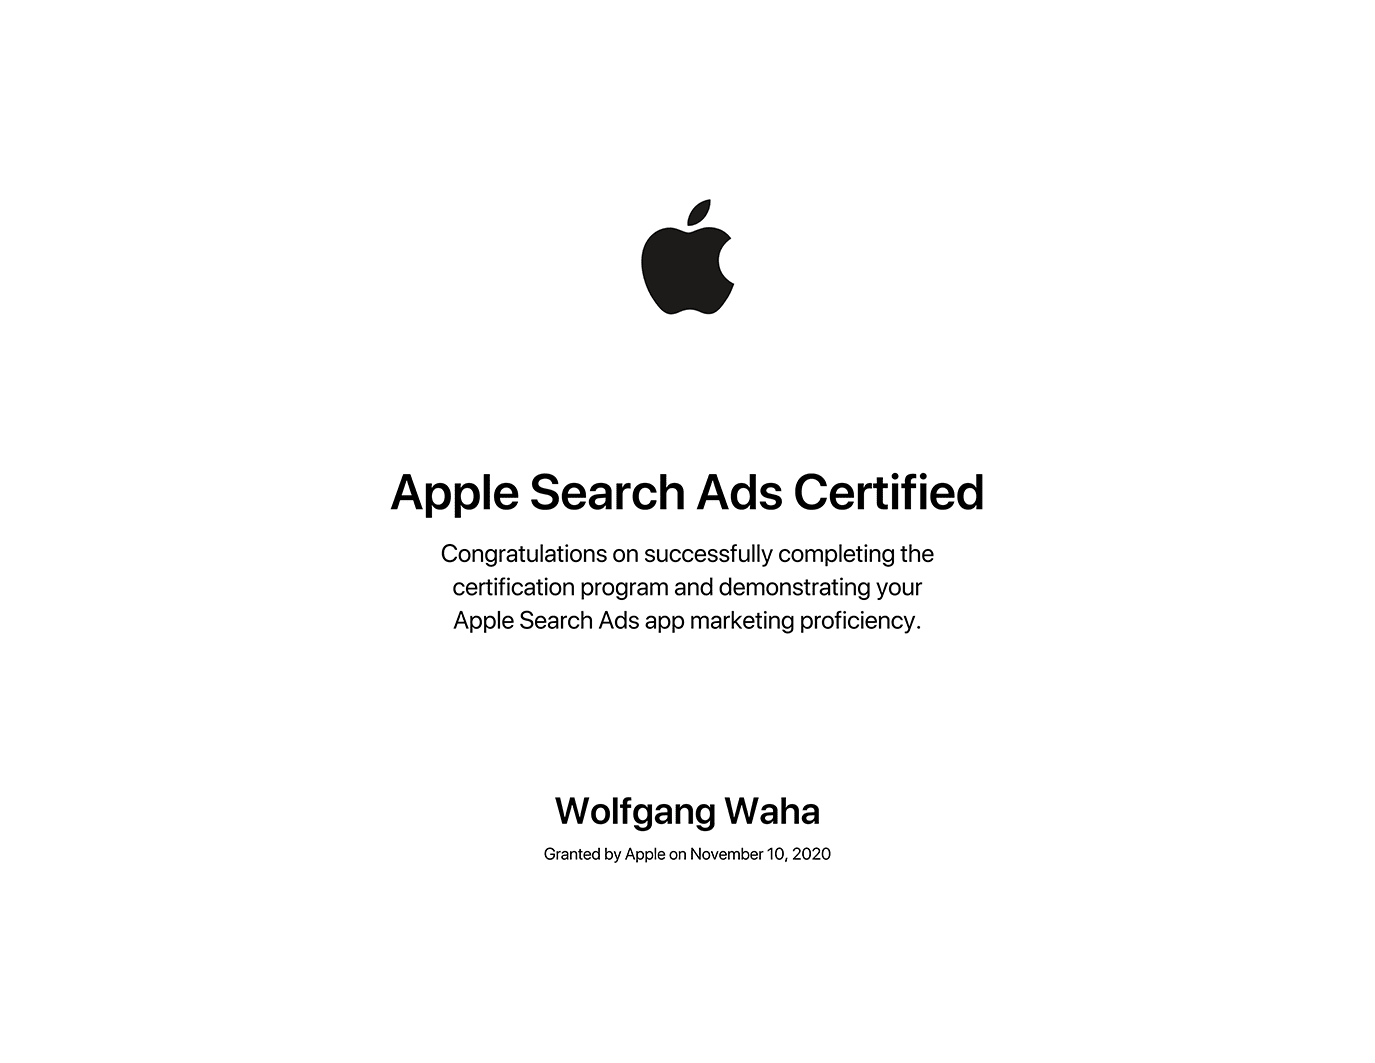 Wolfgang Waha - Apple Search Ads Certified